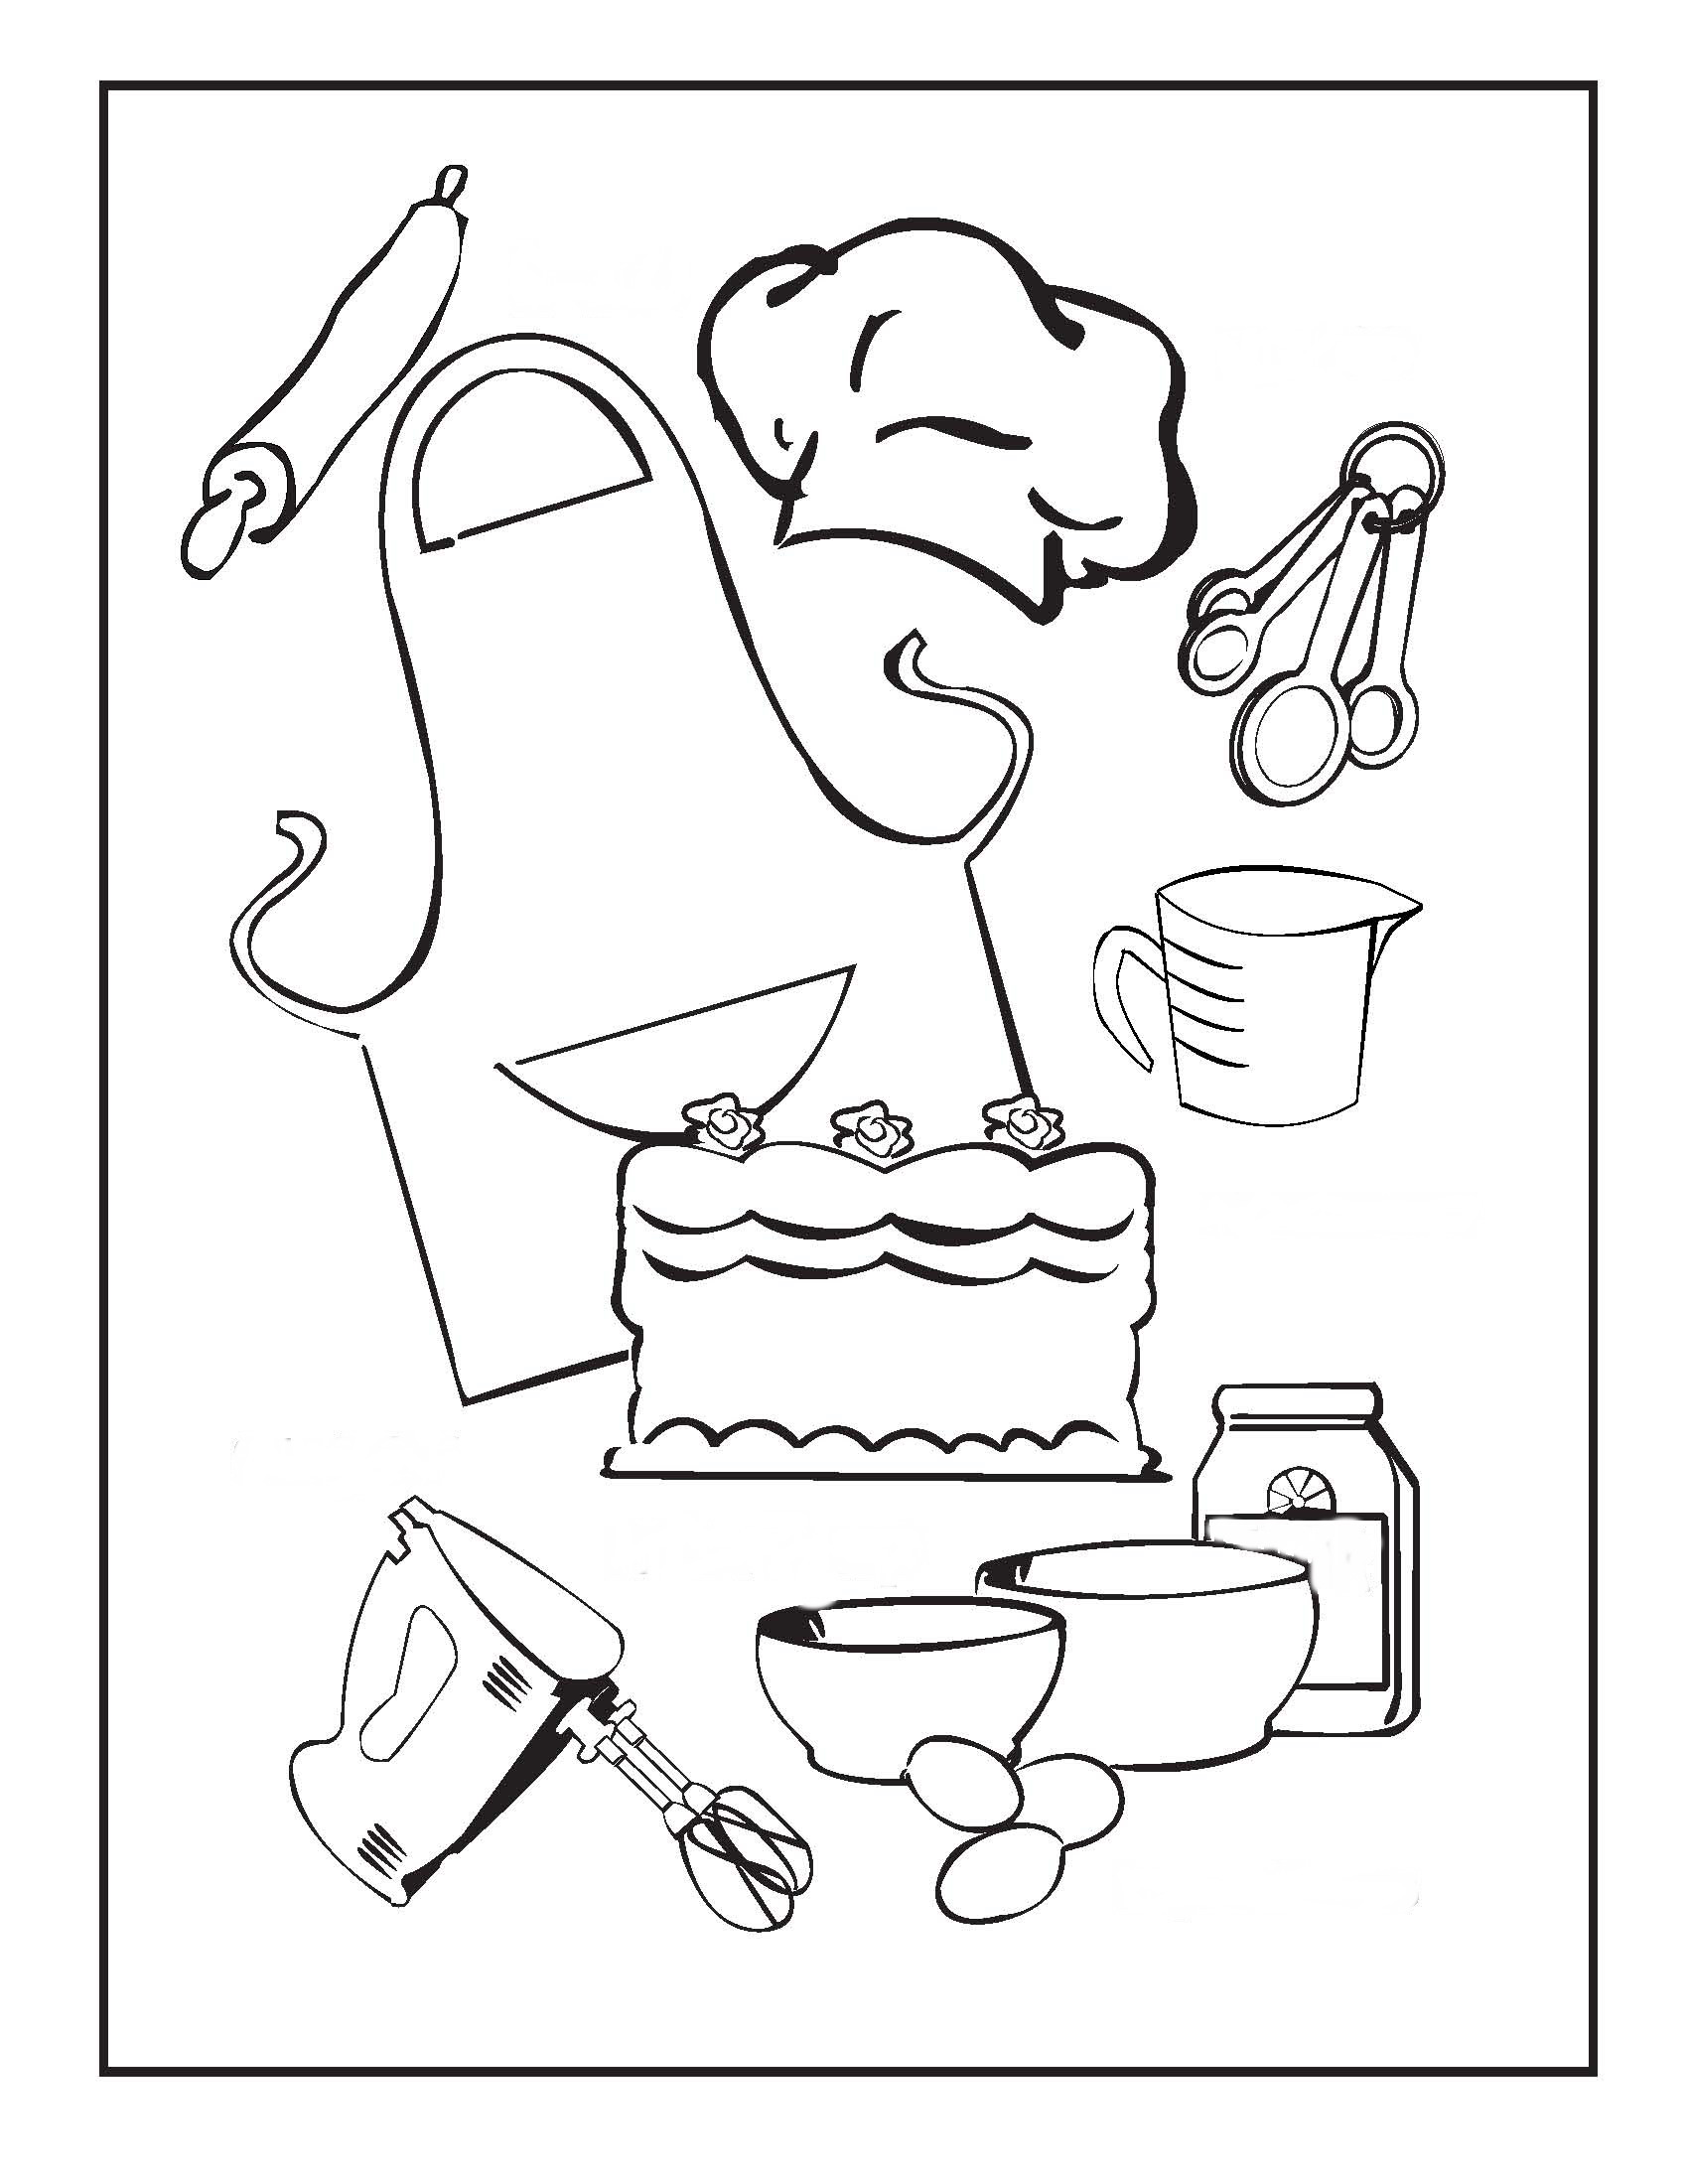 Baking Tools Worksheet